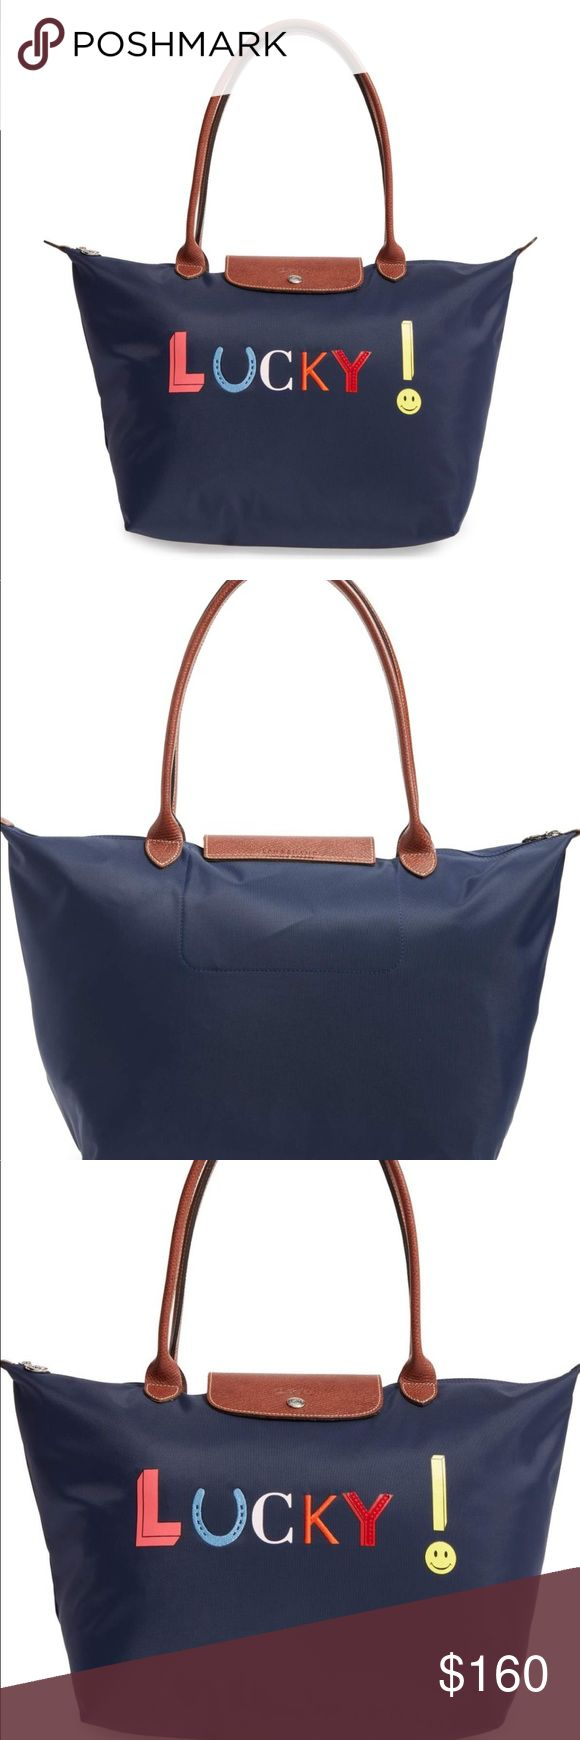 NWOT Longchamp Le Plaige Lucky NWOT As I understand it, this is a 2016 Limited Edition Bag. Bought in France. New without tags because they are removed at the store. This is the long handled version. I have the short handle as well and will list later. More pictures to come. Longchamp Bags Shoulder Bags